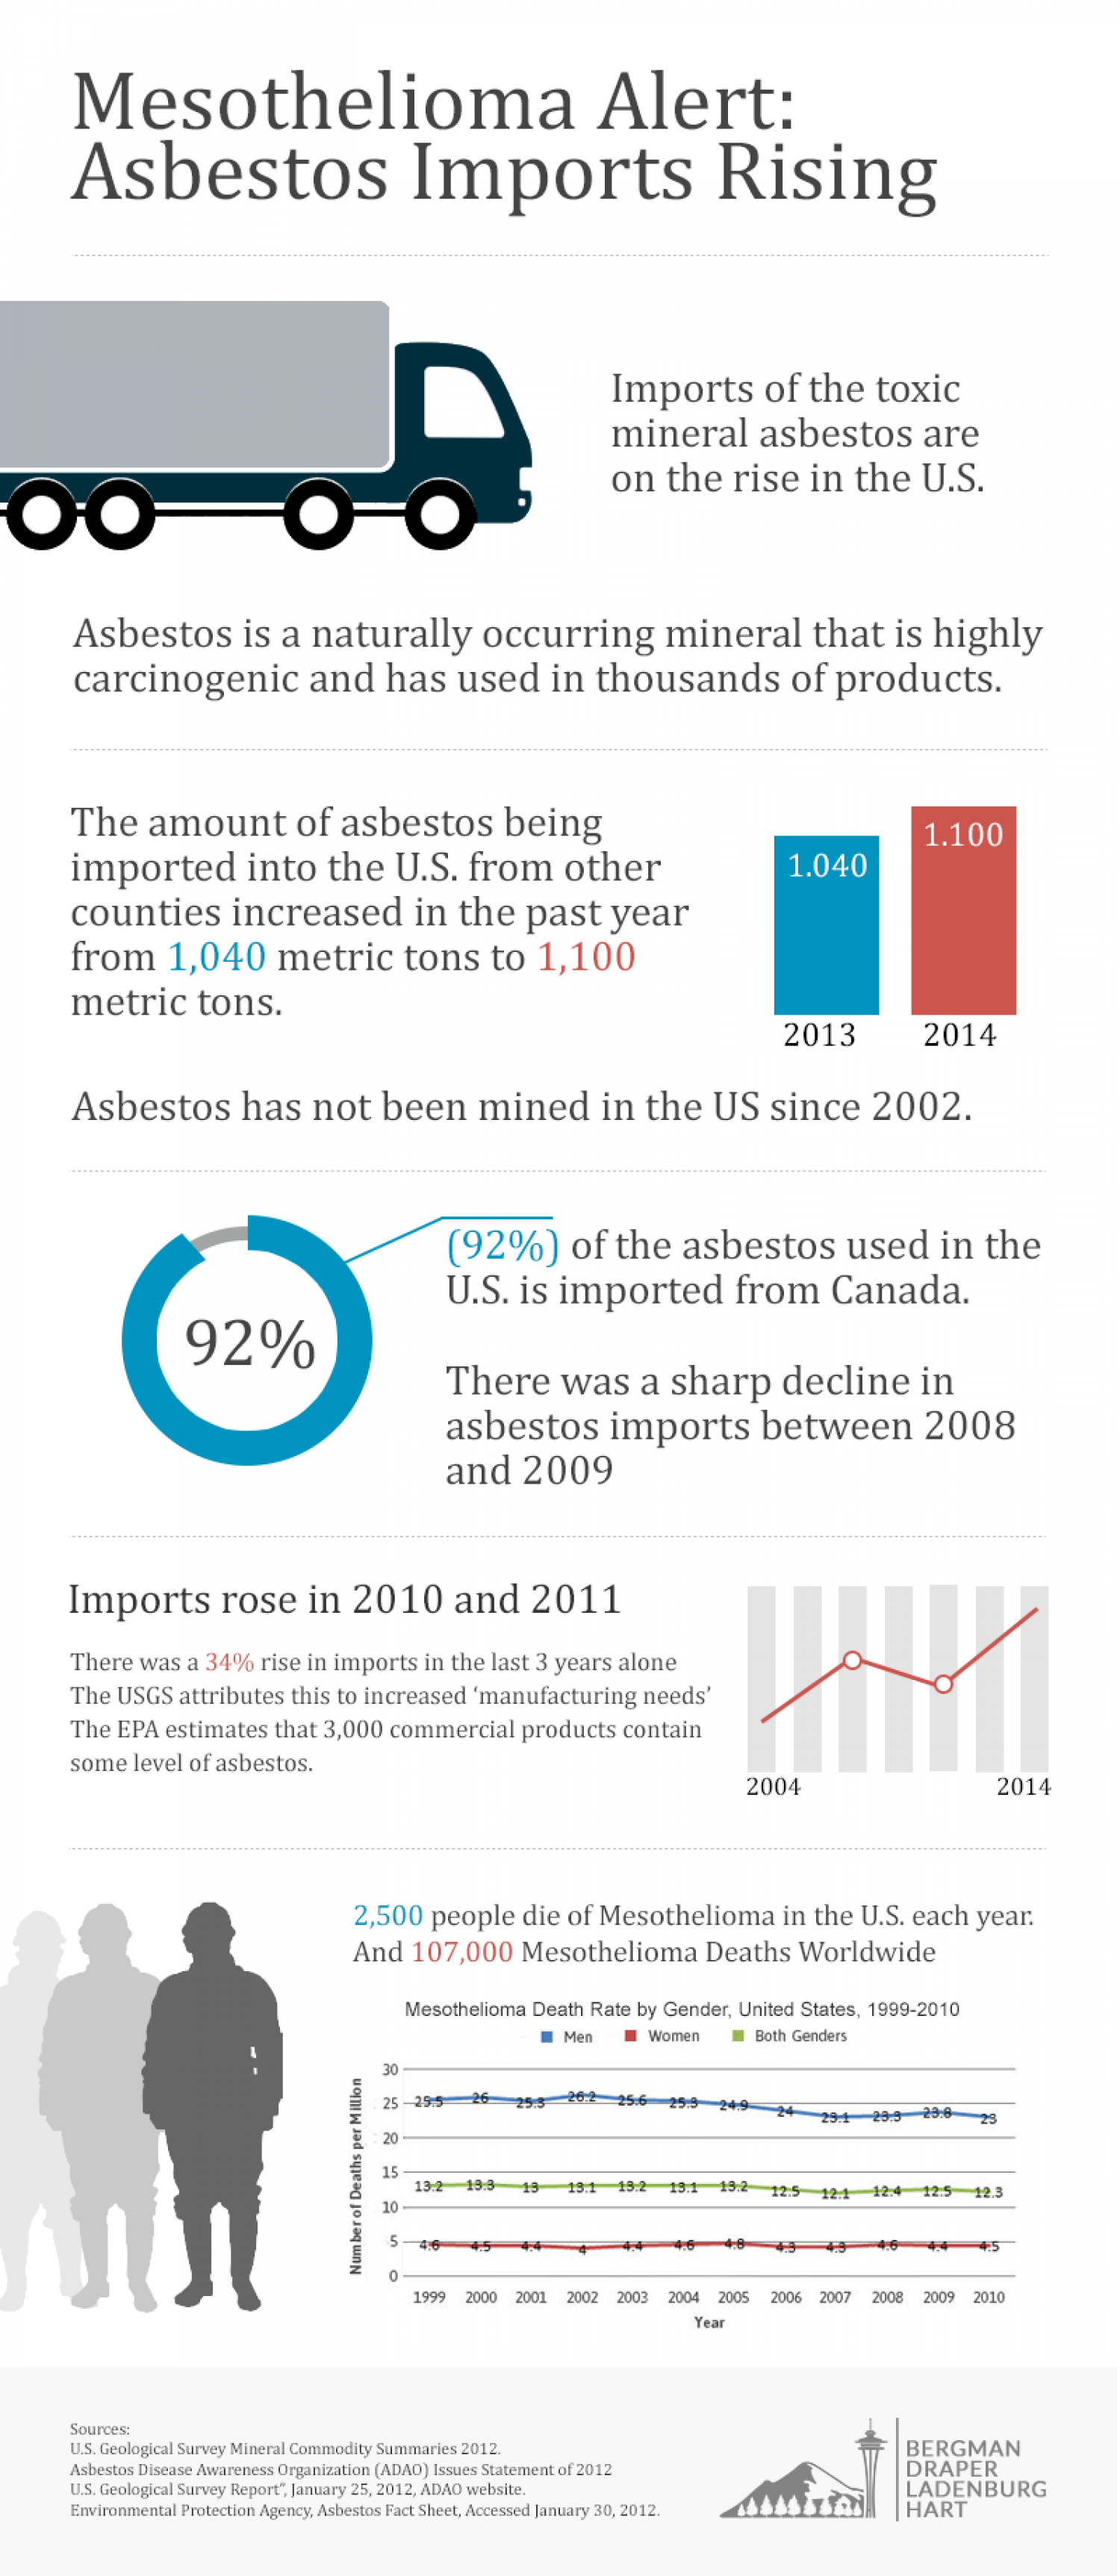 Mesothelioma Alert : Asbestos Imports Rising Infographic